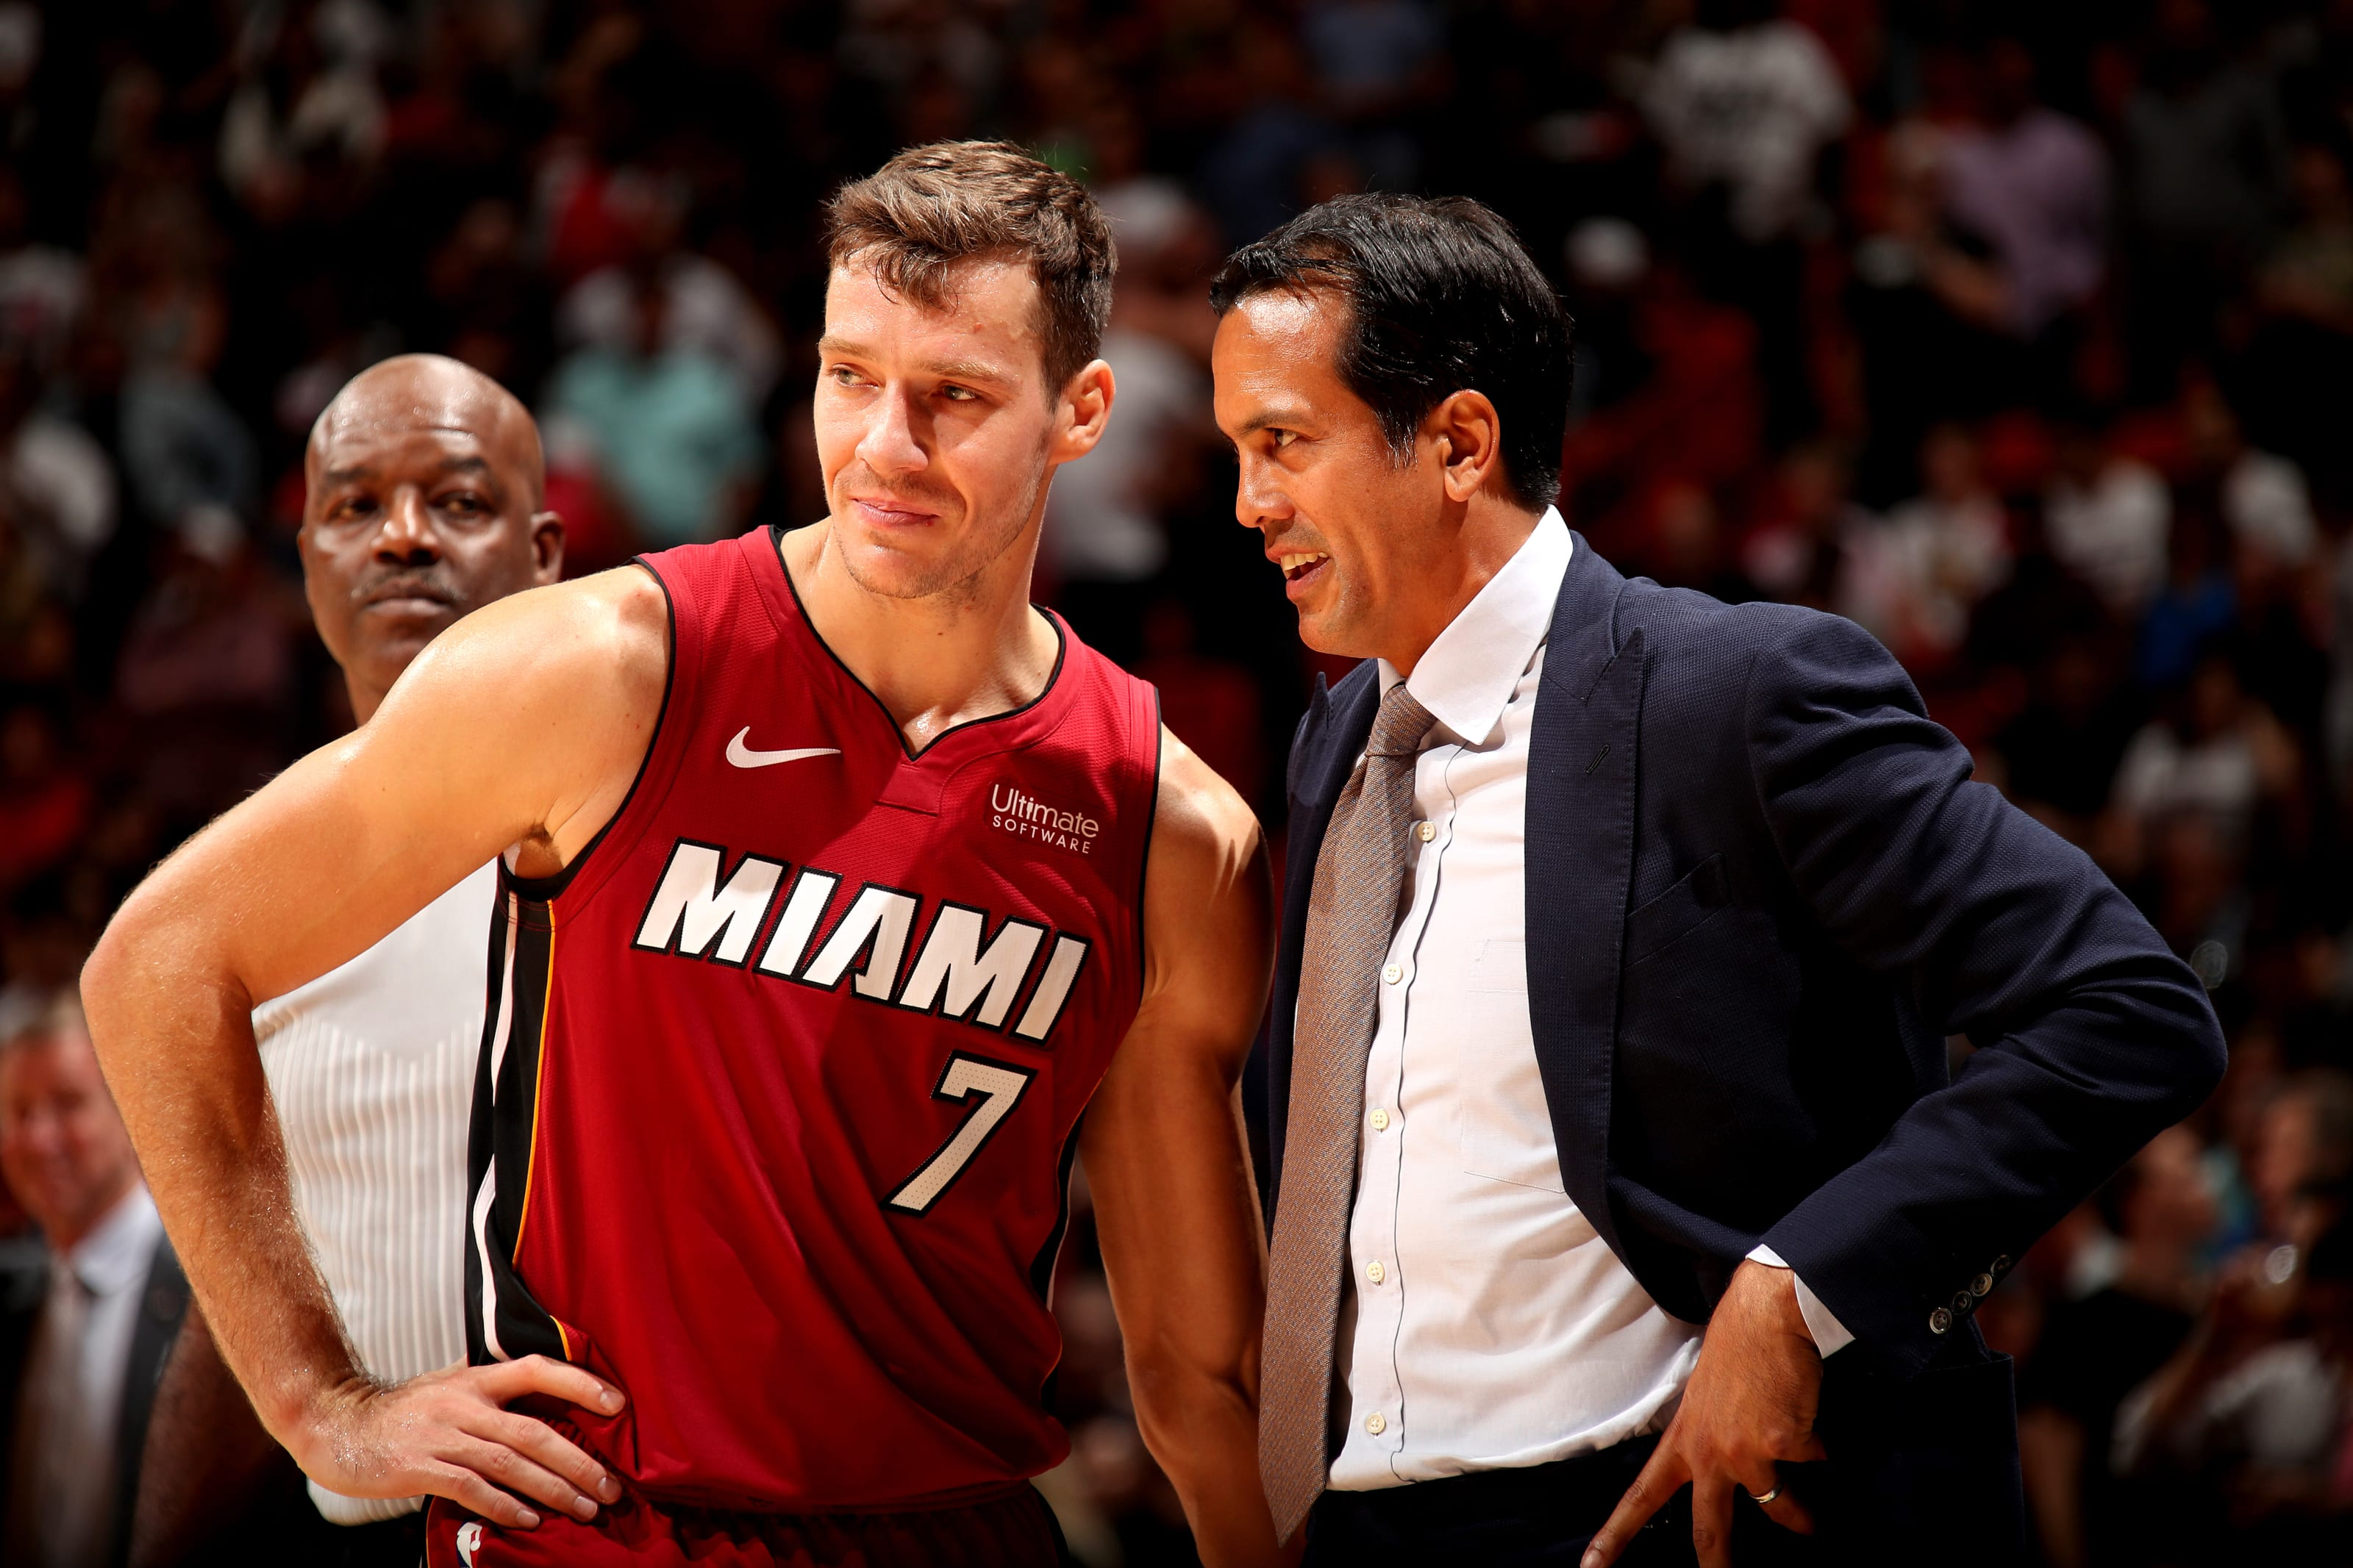 Miami Heat 5 Trades And Free Agent Signings To Rejuvenate The Roster